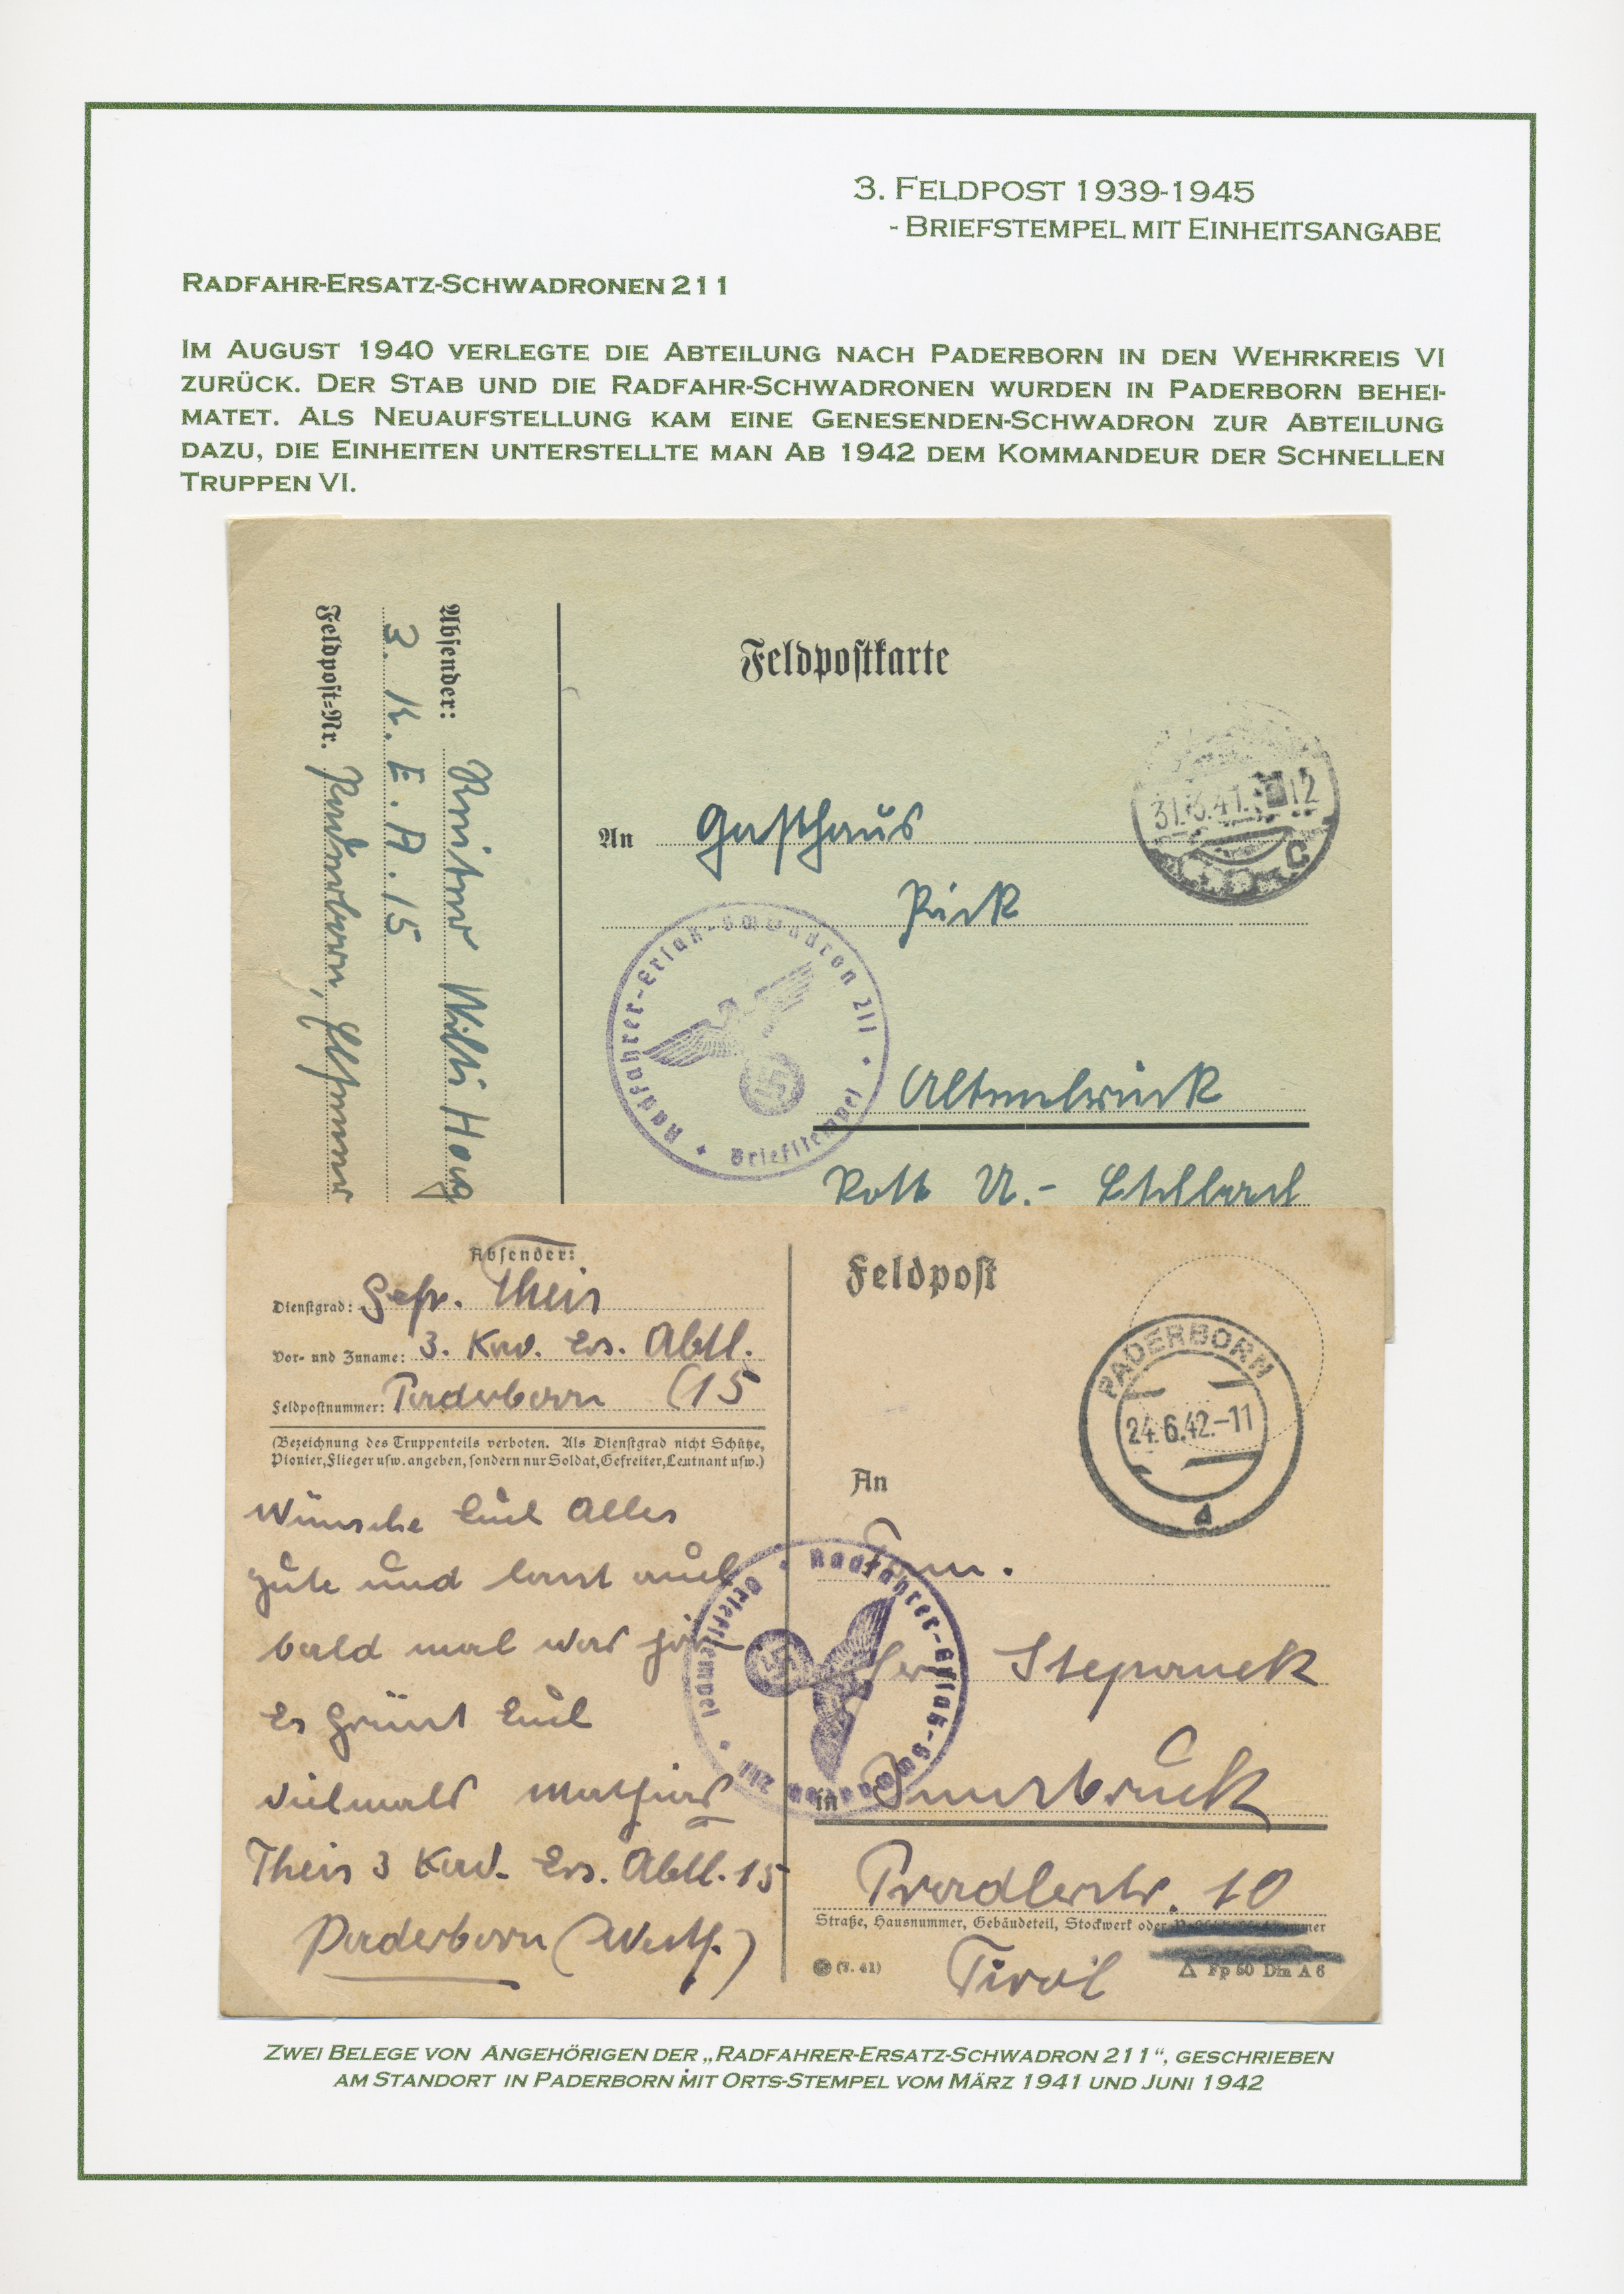 Lot 37588 - feldpost 2. weltkrieg  -  Auktionshaus Christoph Gärtner GmbH & Co. KG Collections Germany,  Collections Supplement, Surprise boxes #39 Day 7